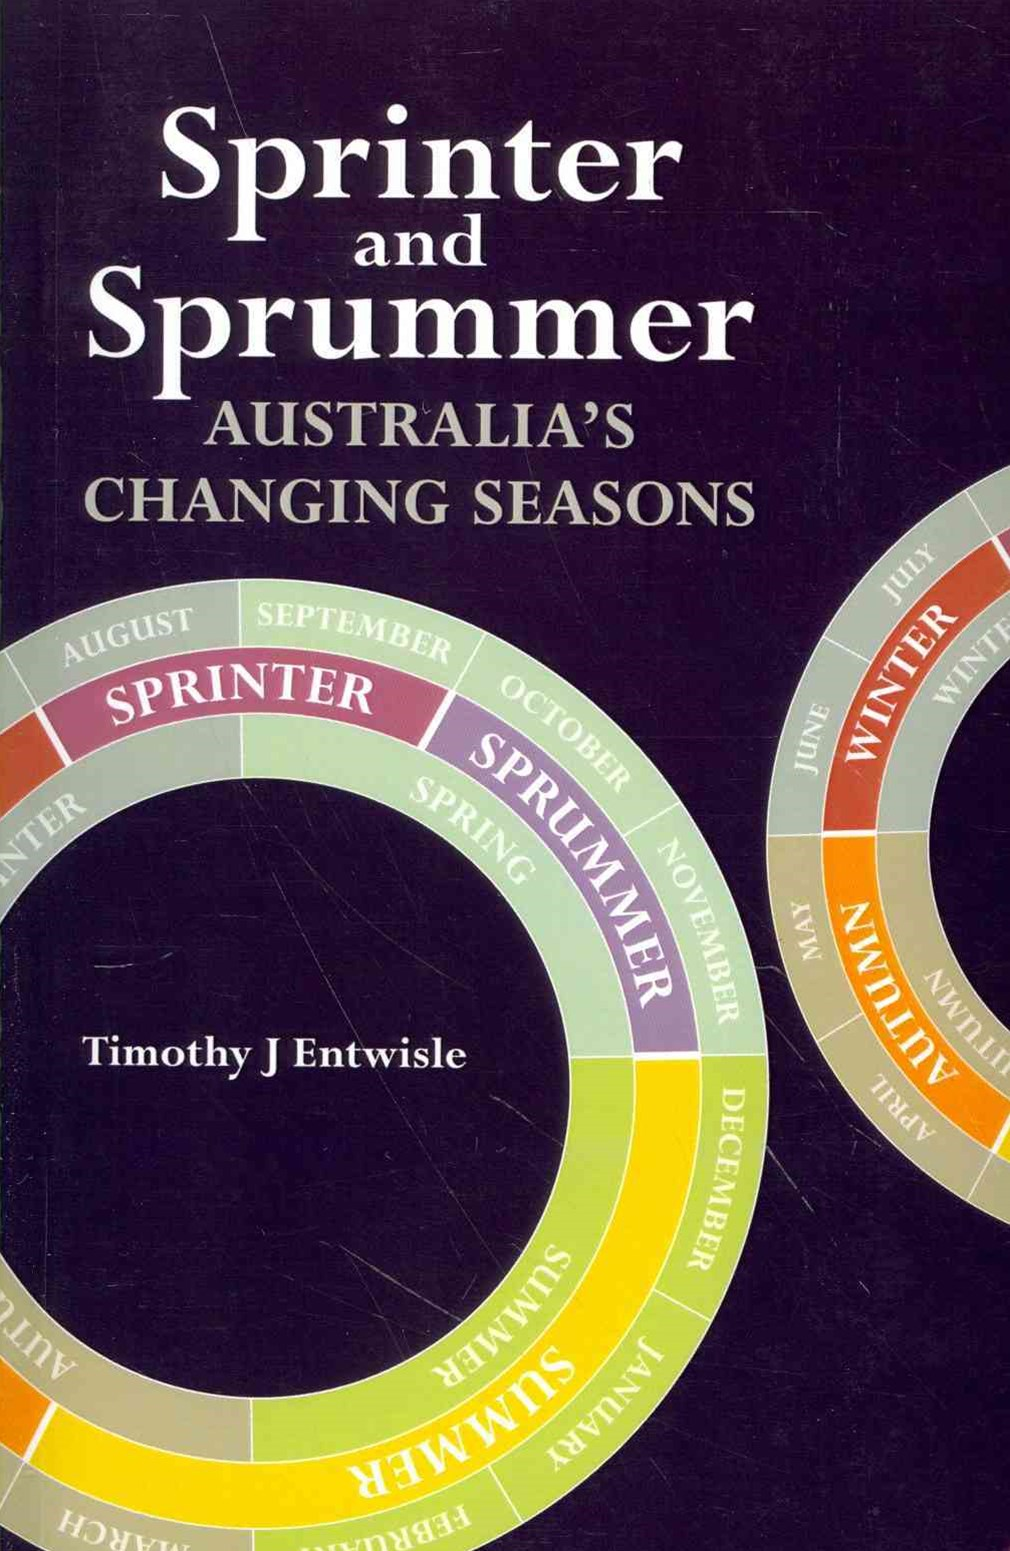 Sprinter and Sprummer